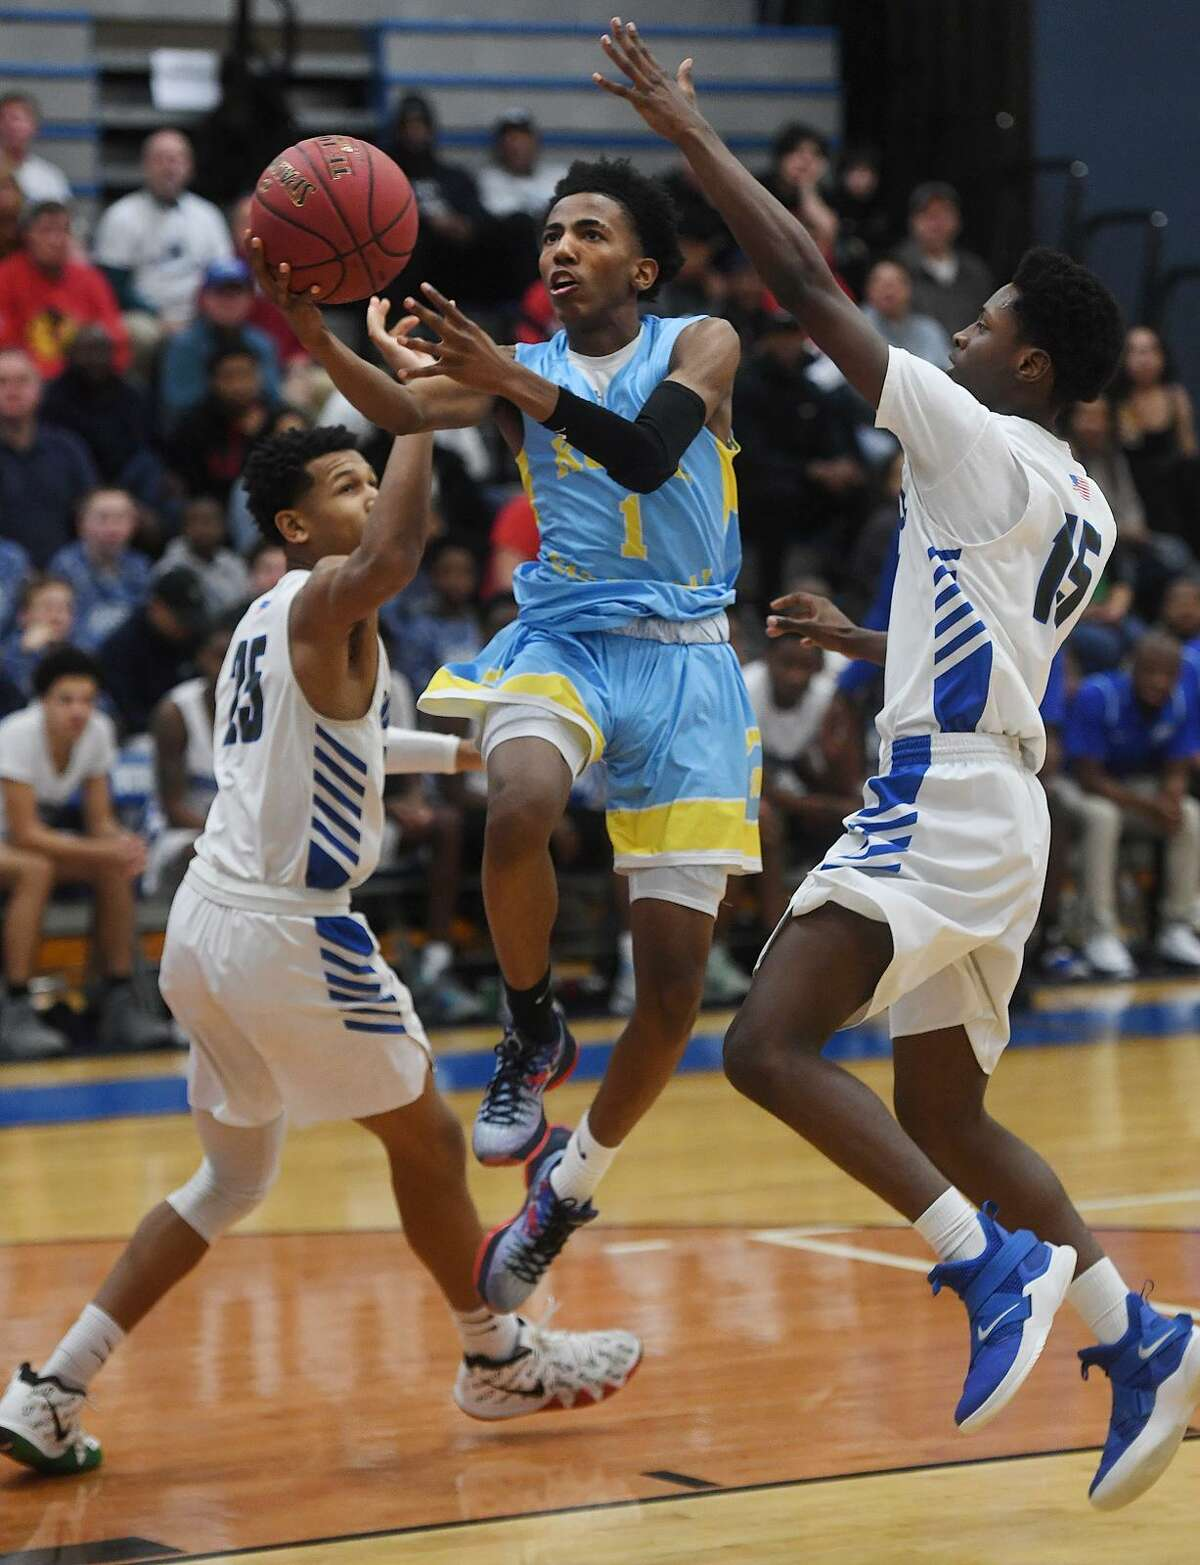 Kolbe Cathedral's Ty Staples-Santos drives to the basket between Bunnell defenders Javon Wilson, left, and Kevin Lanham during Bunnell's victory in the SWC boys basketball semifinals at Bunnell High School in Stratford, Conn. on Monday, February 25, 2019.